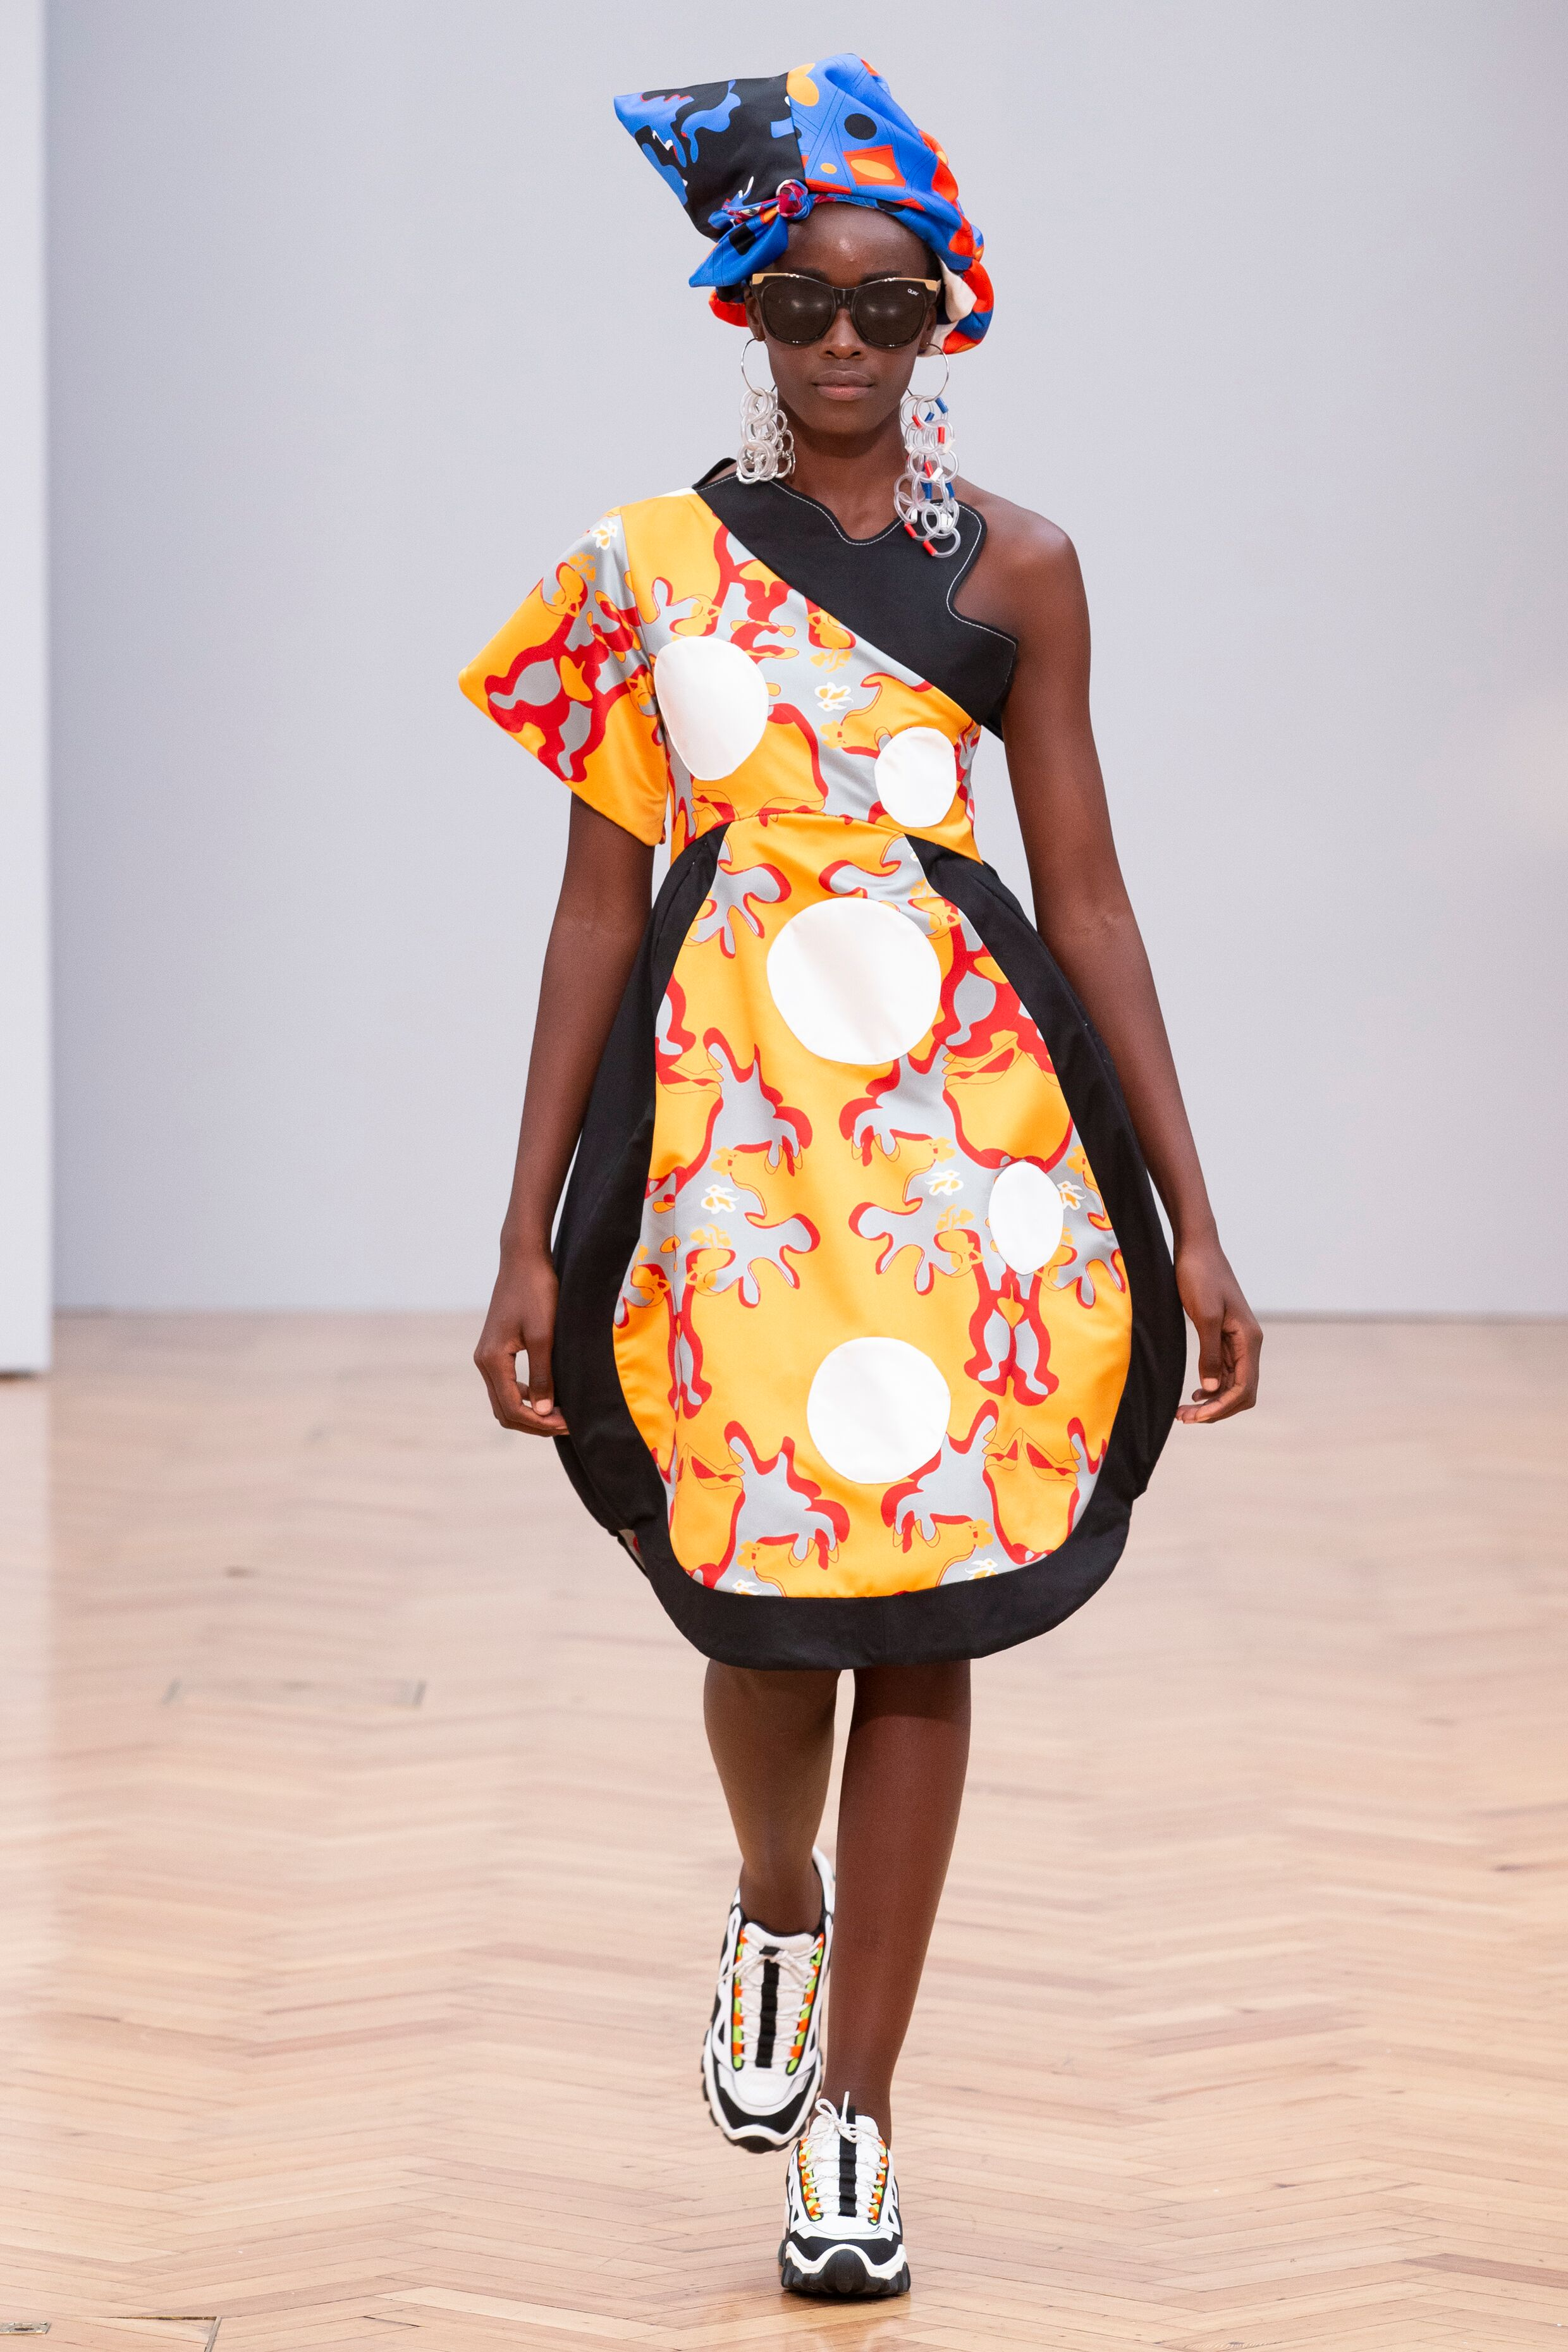 Istituto Marangoni new era fashion show patterned asymetric dress